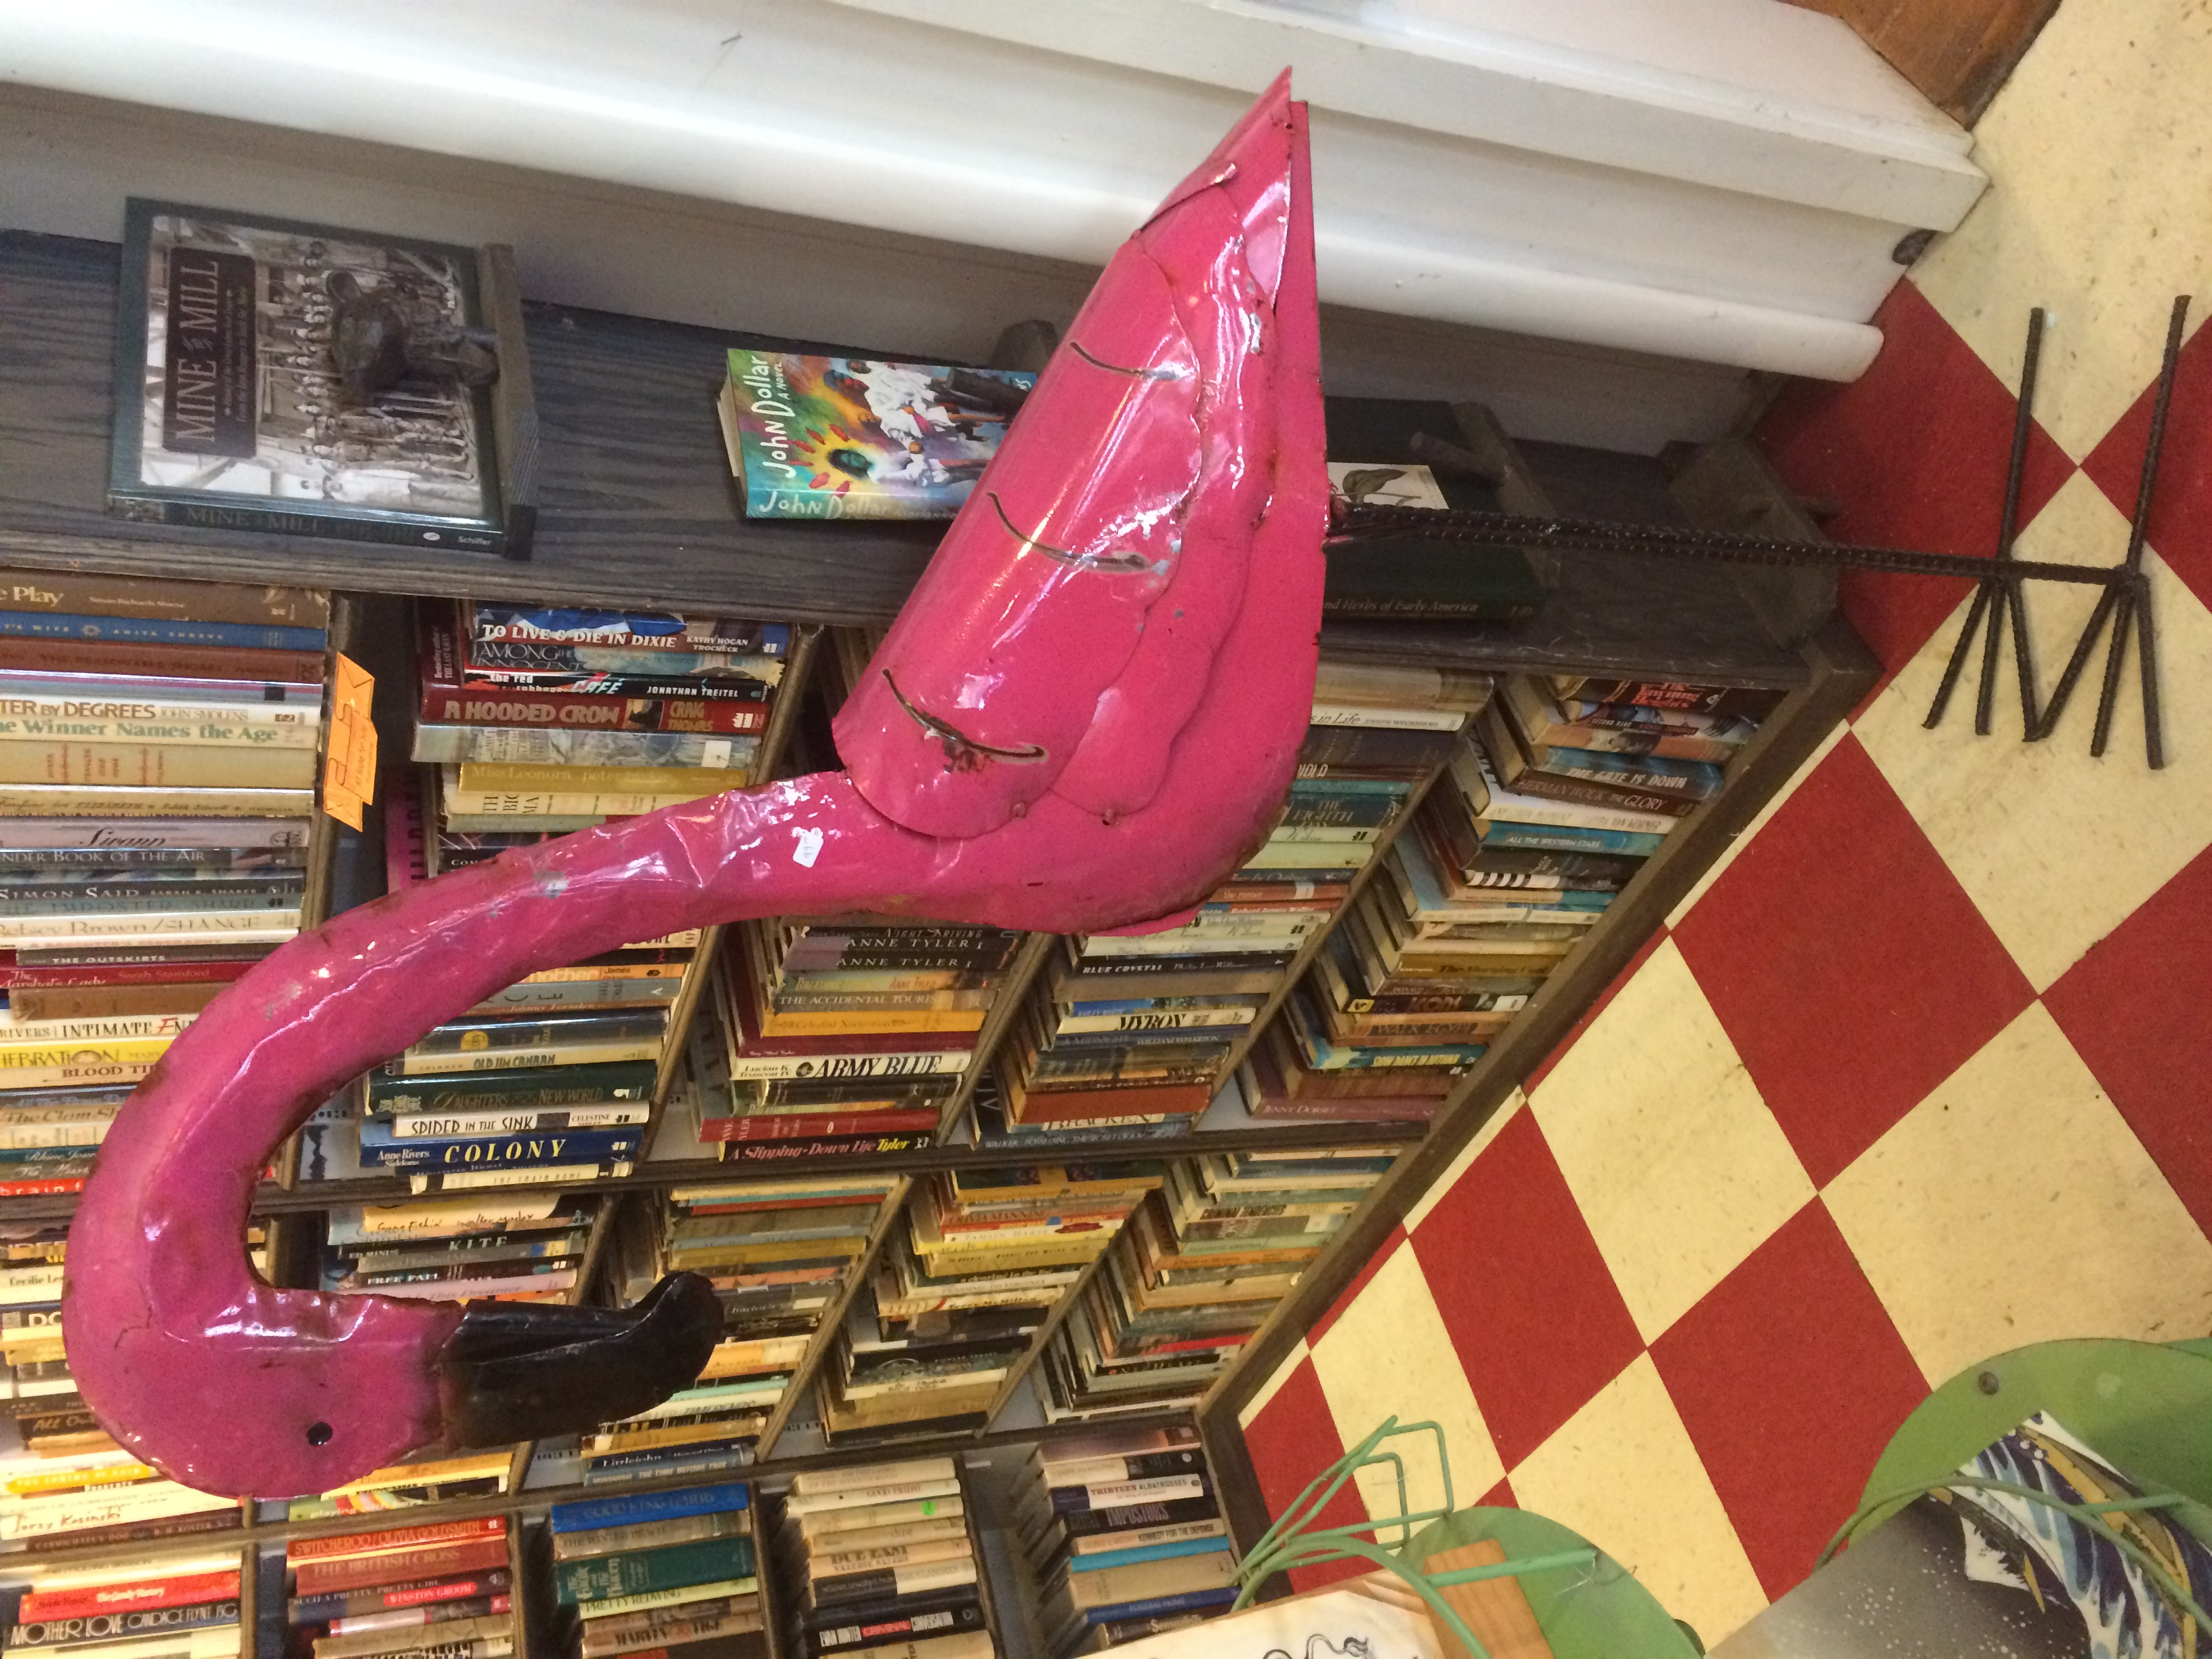 Little Switzerland Books and Beans, 9426 Hwy 226-A, Po Box 535, Little Switzerland, NC, 28749, USA